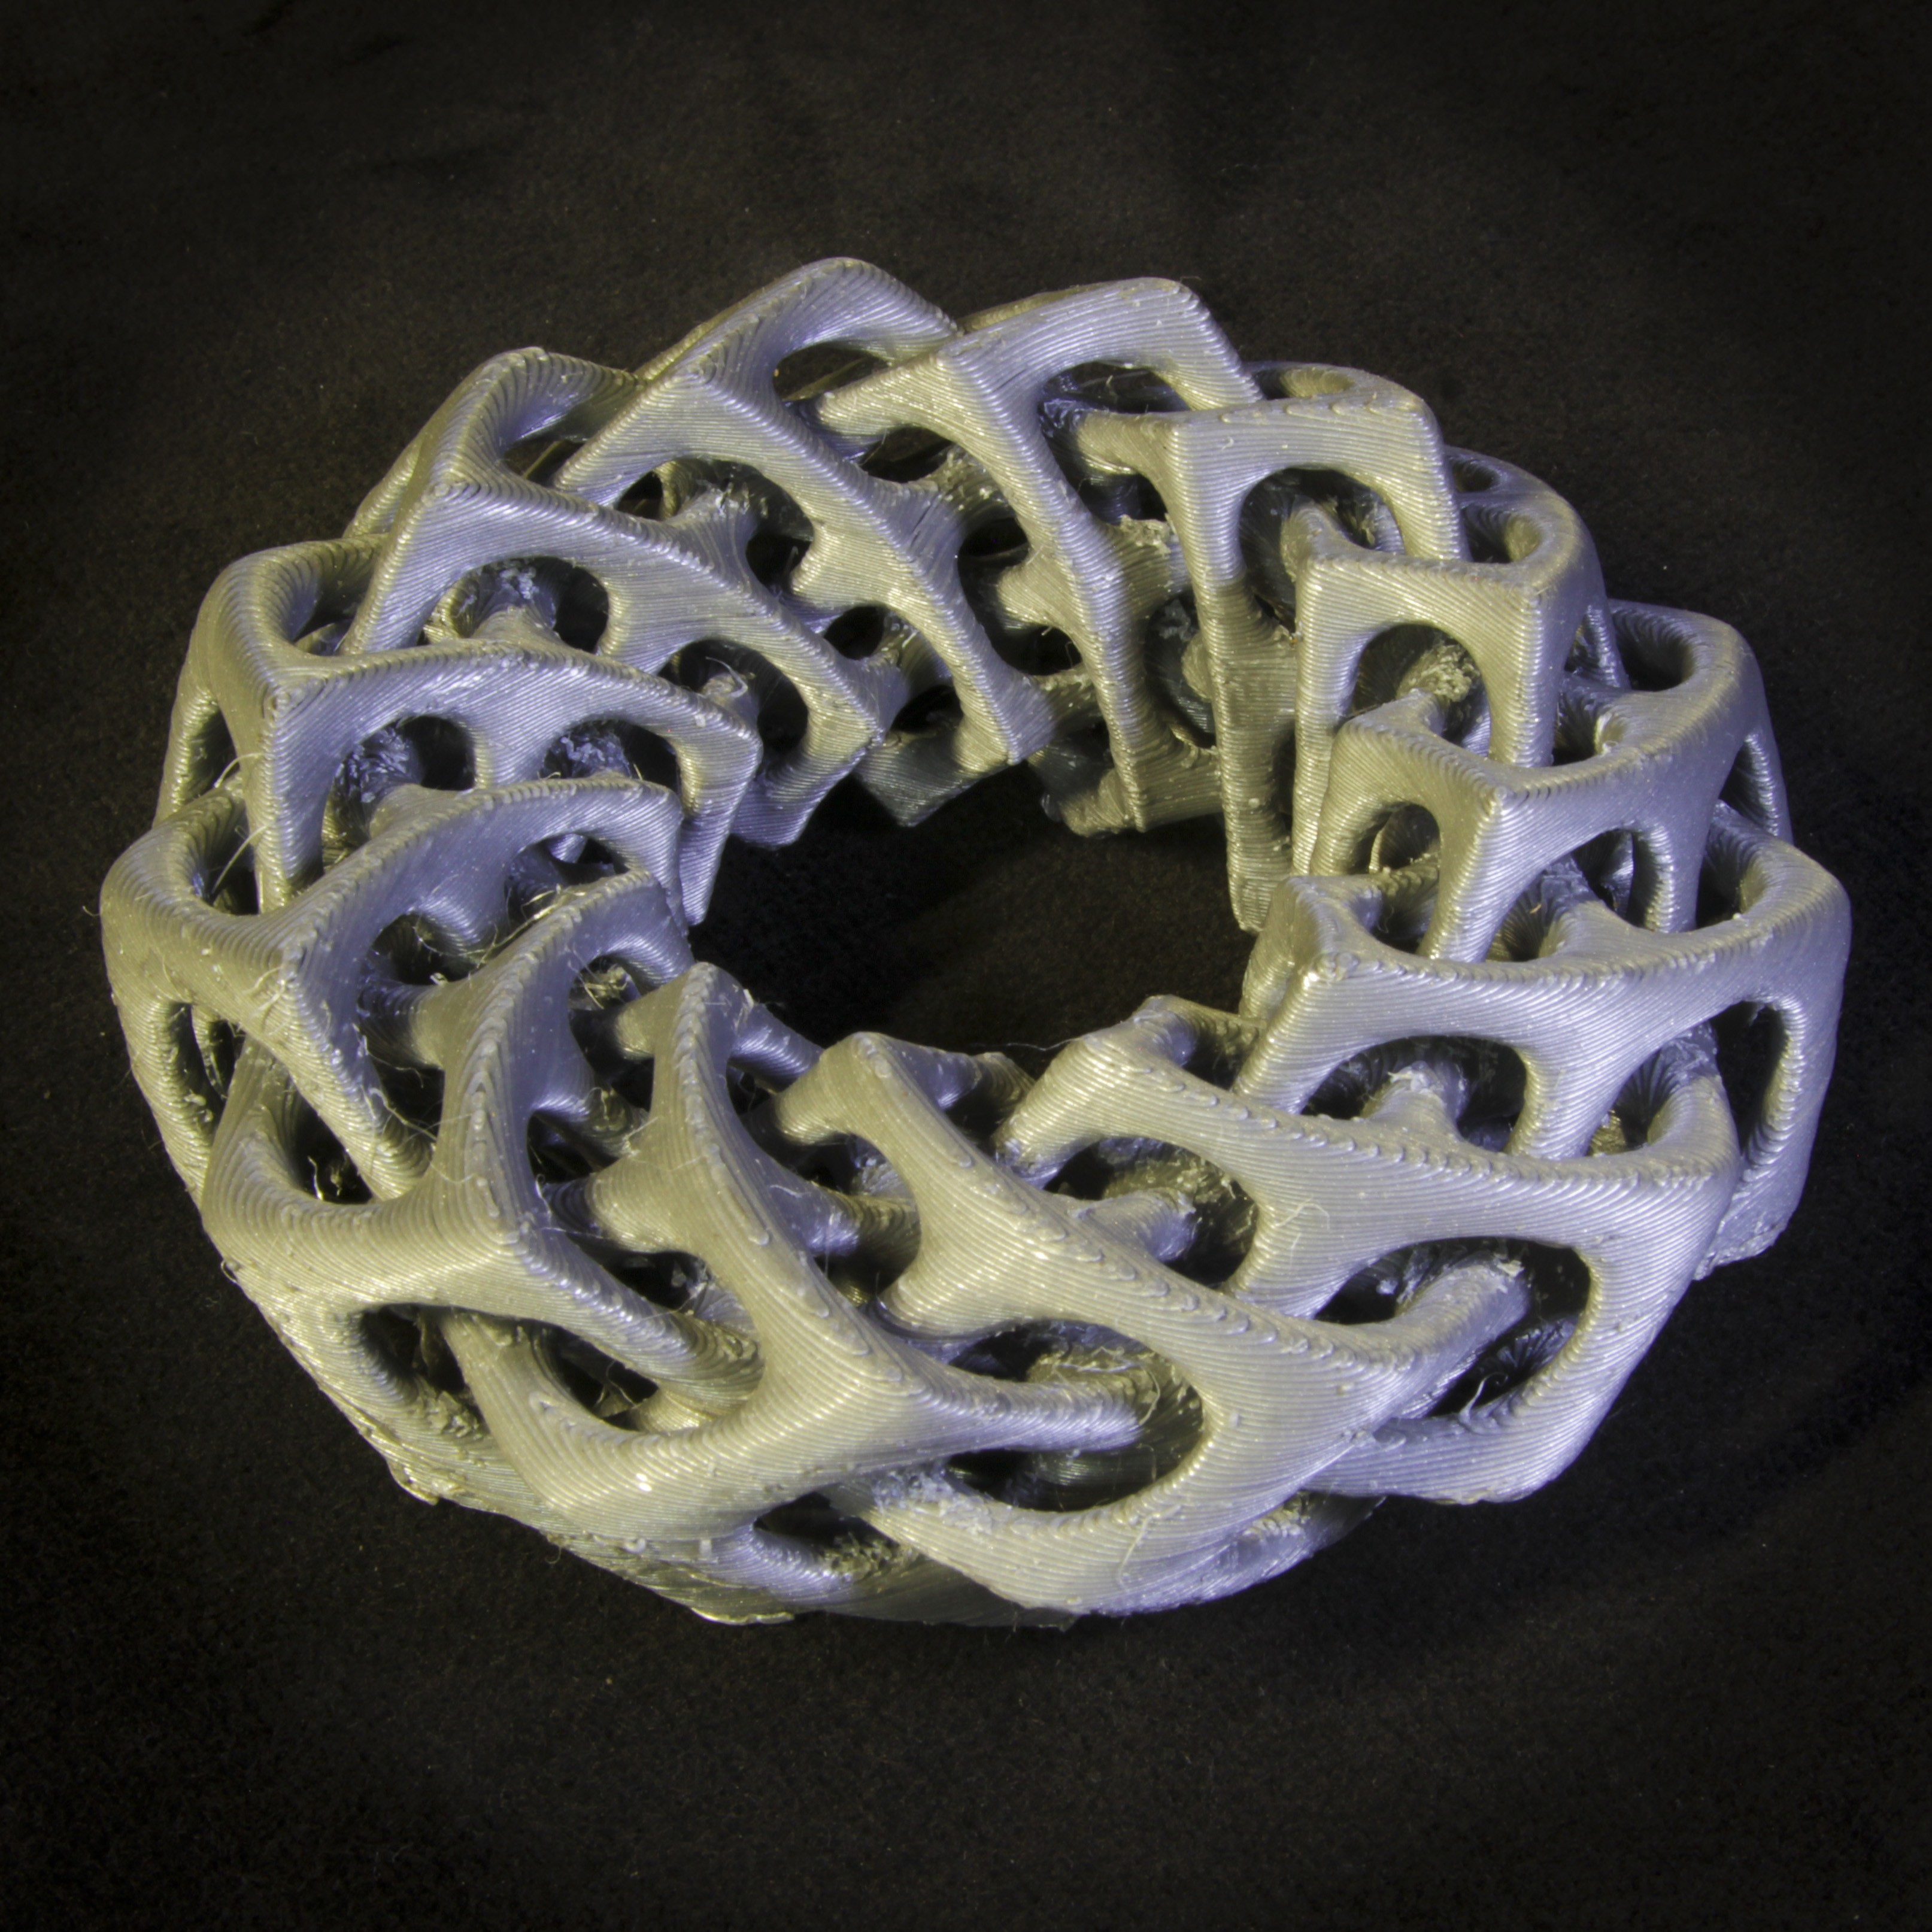 IMG_4497 Square.JPG Download free STL file Self-Intersecting Torus with Twist • 3D printing model, LYTEHAUS